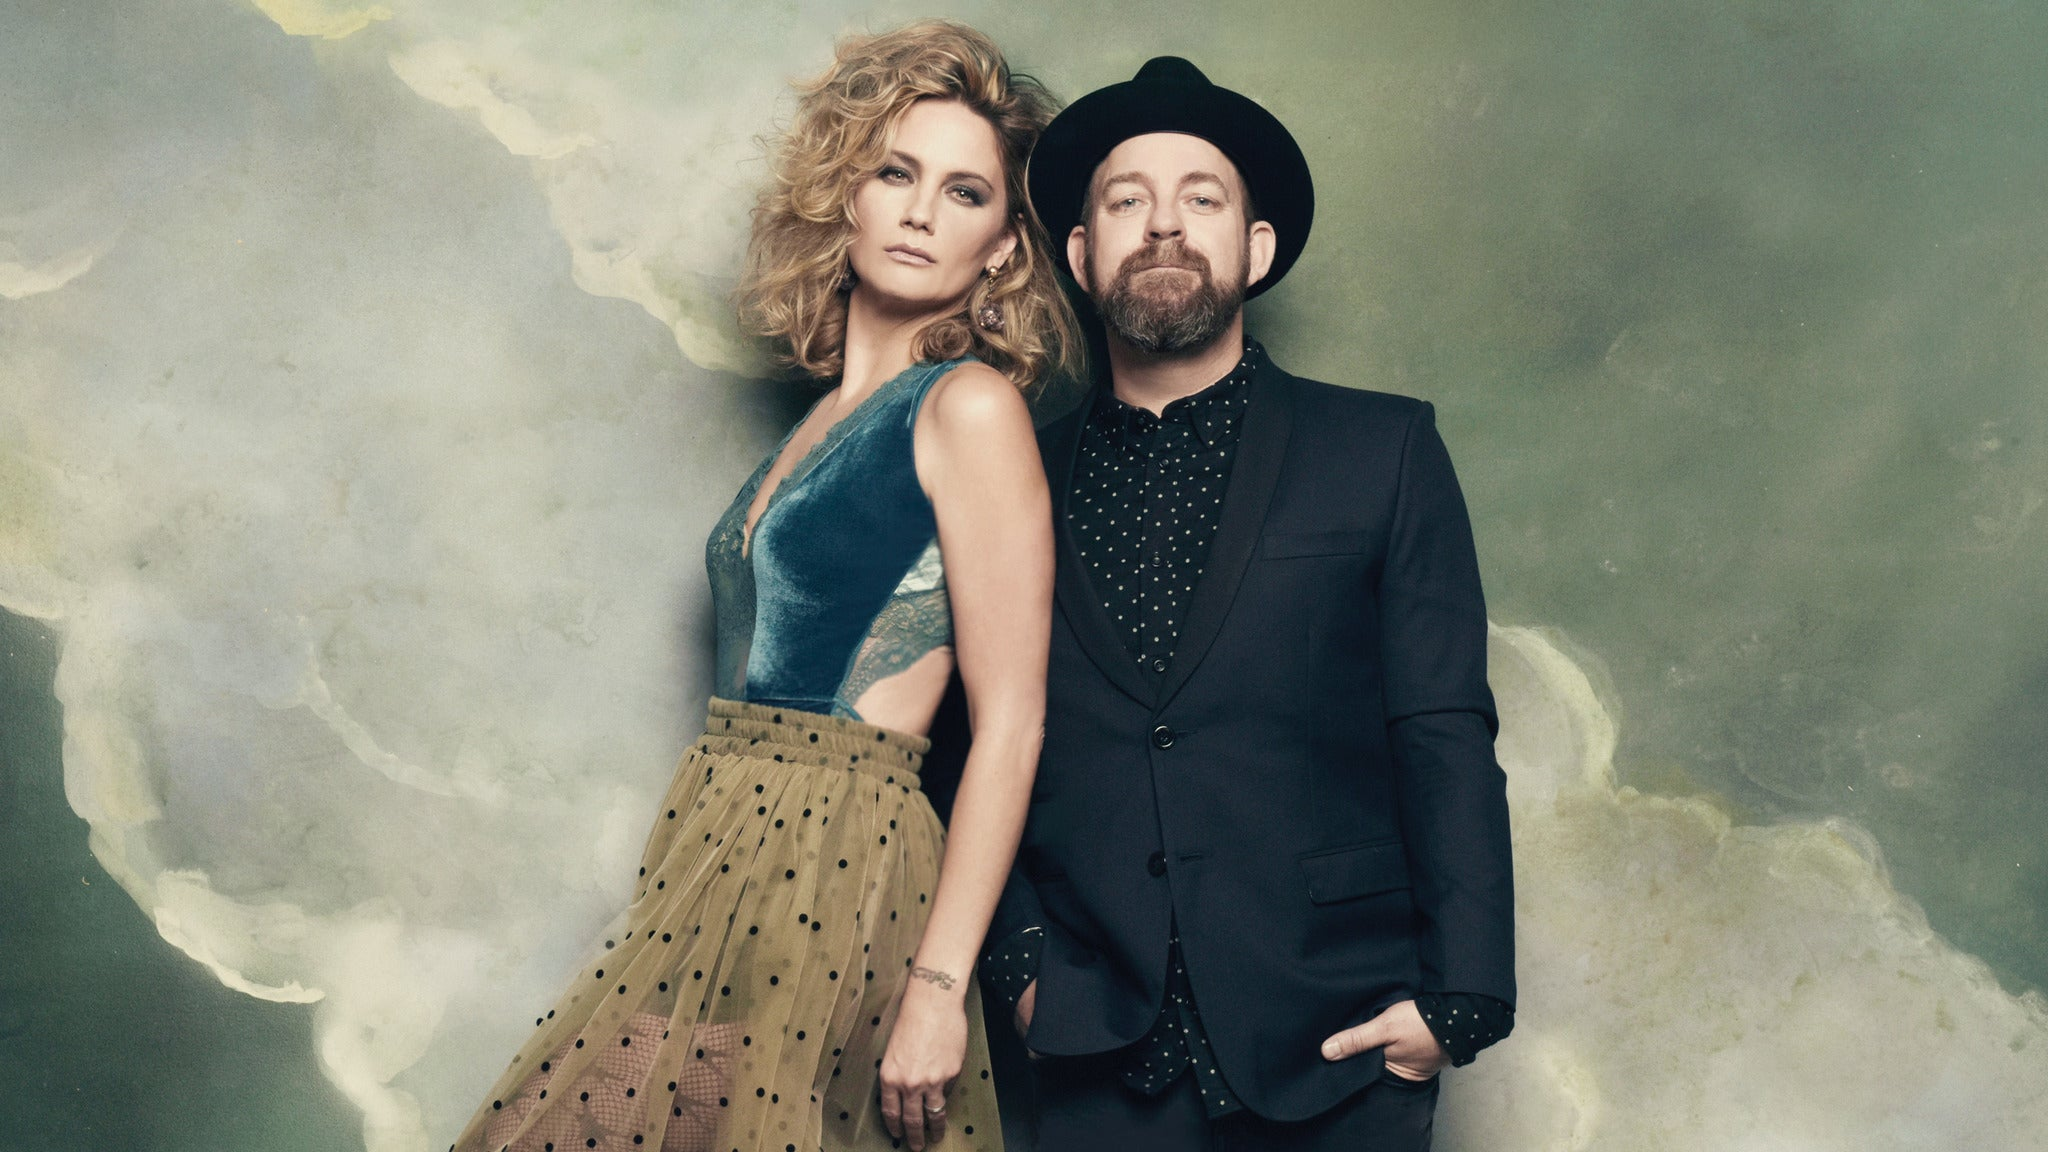 Sugarland at Greek Theatre-Los Angeles - Los Angeles, CA 90027